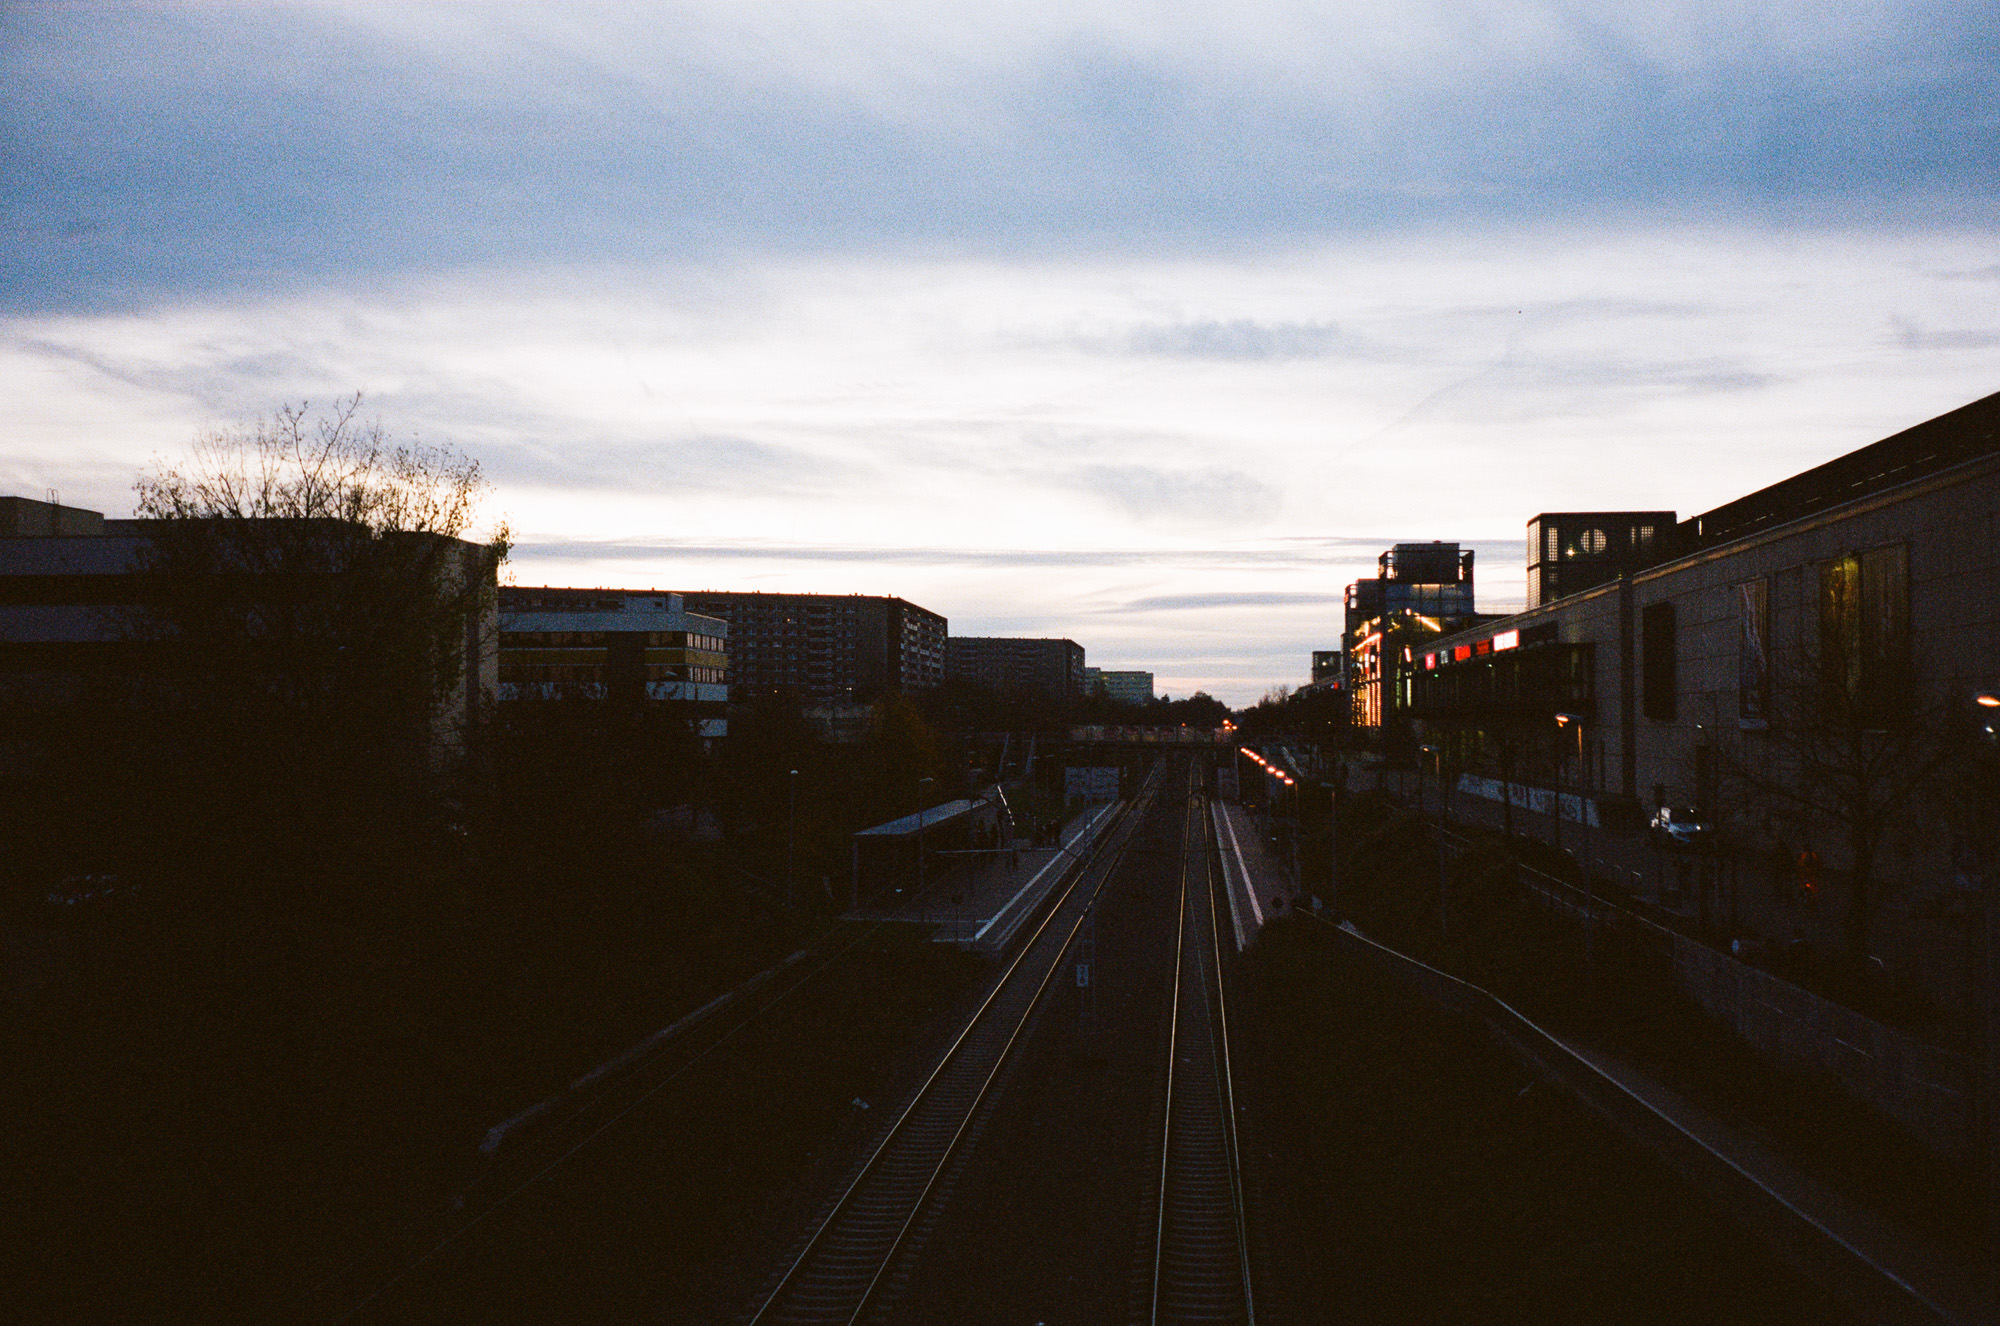 Analogue stories film photography travel